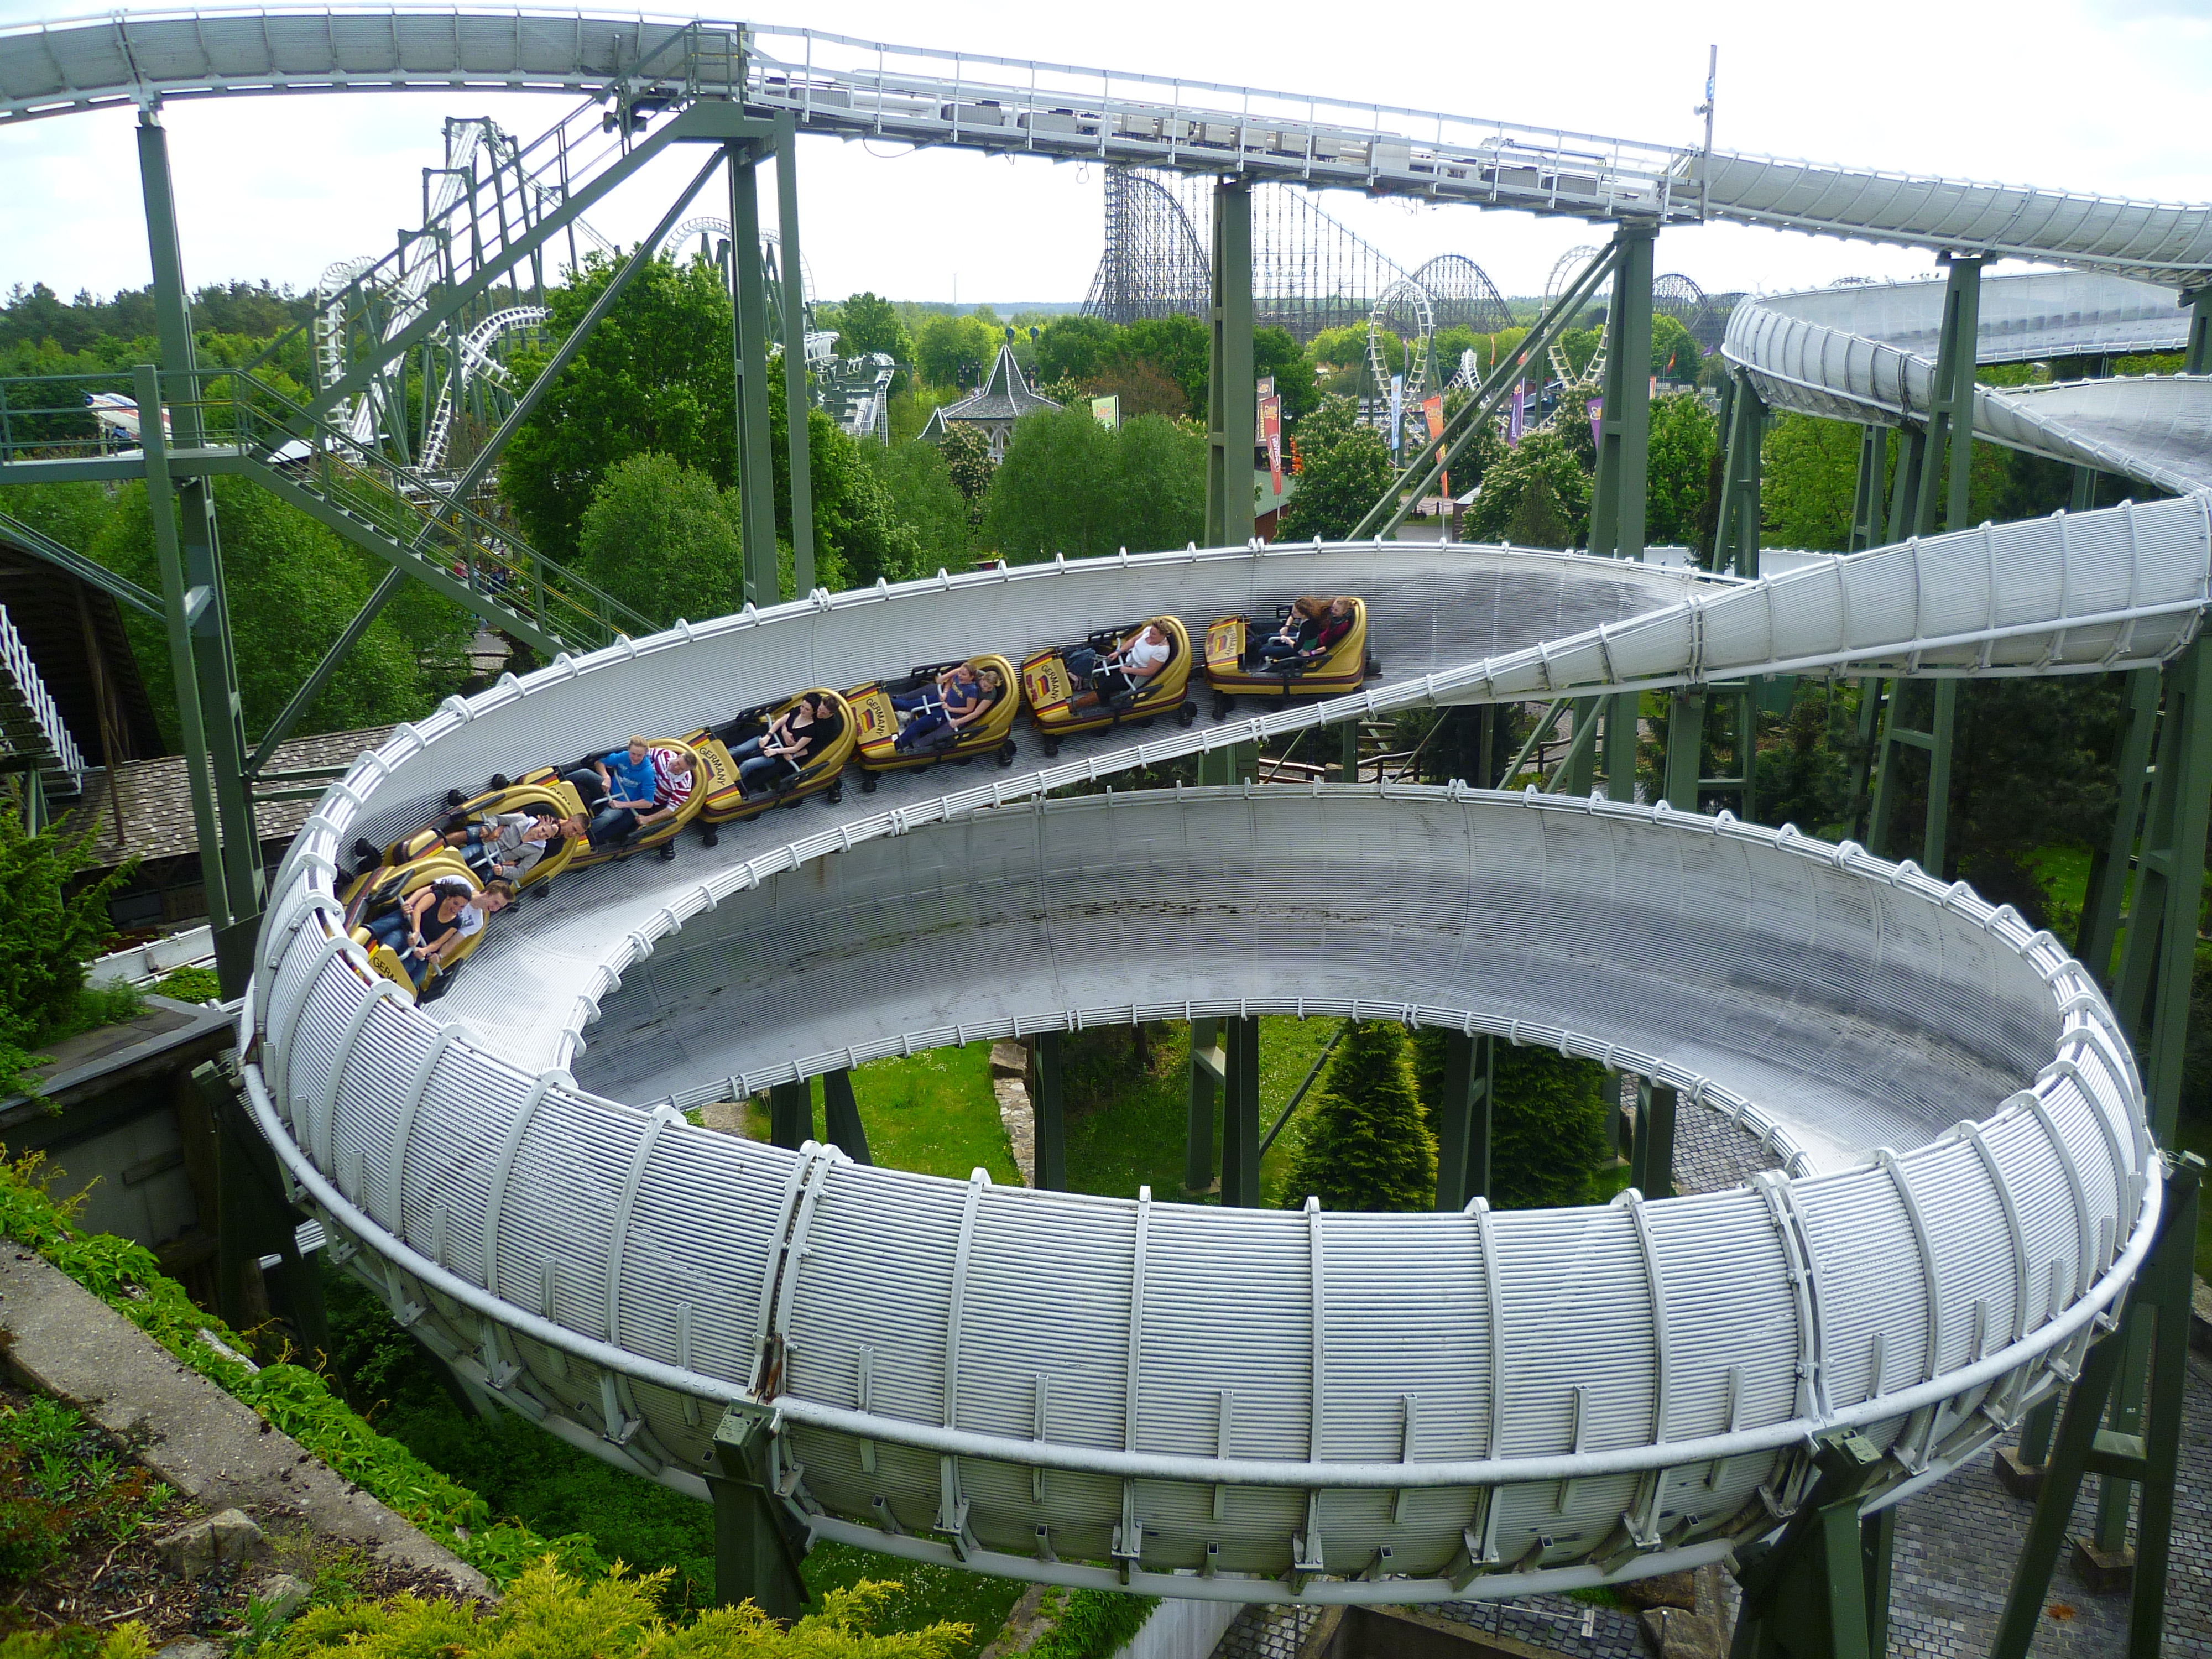 Bobbahn (Heide Park Resort) – Wikipedia